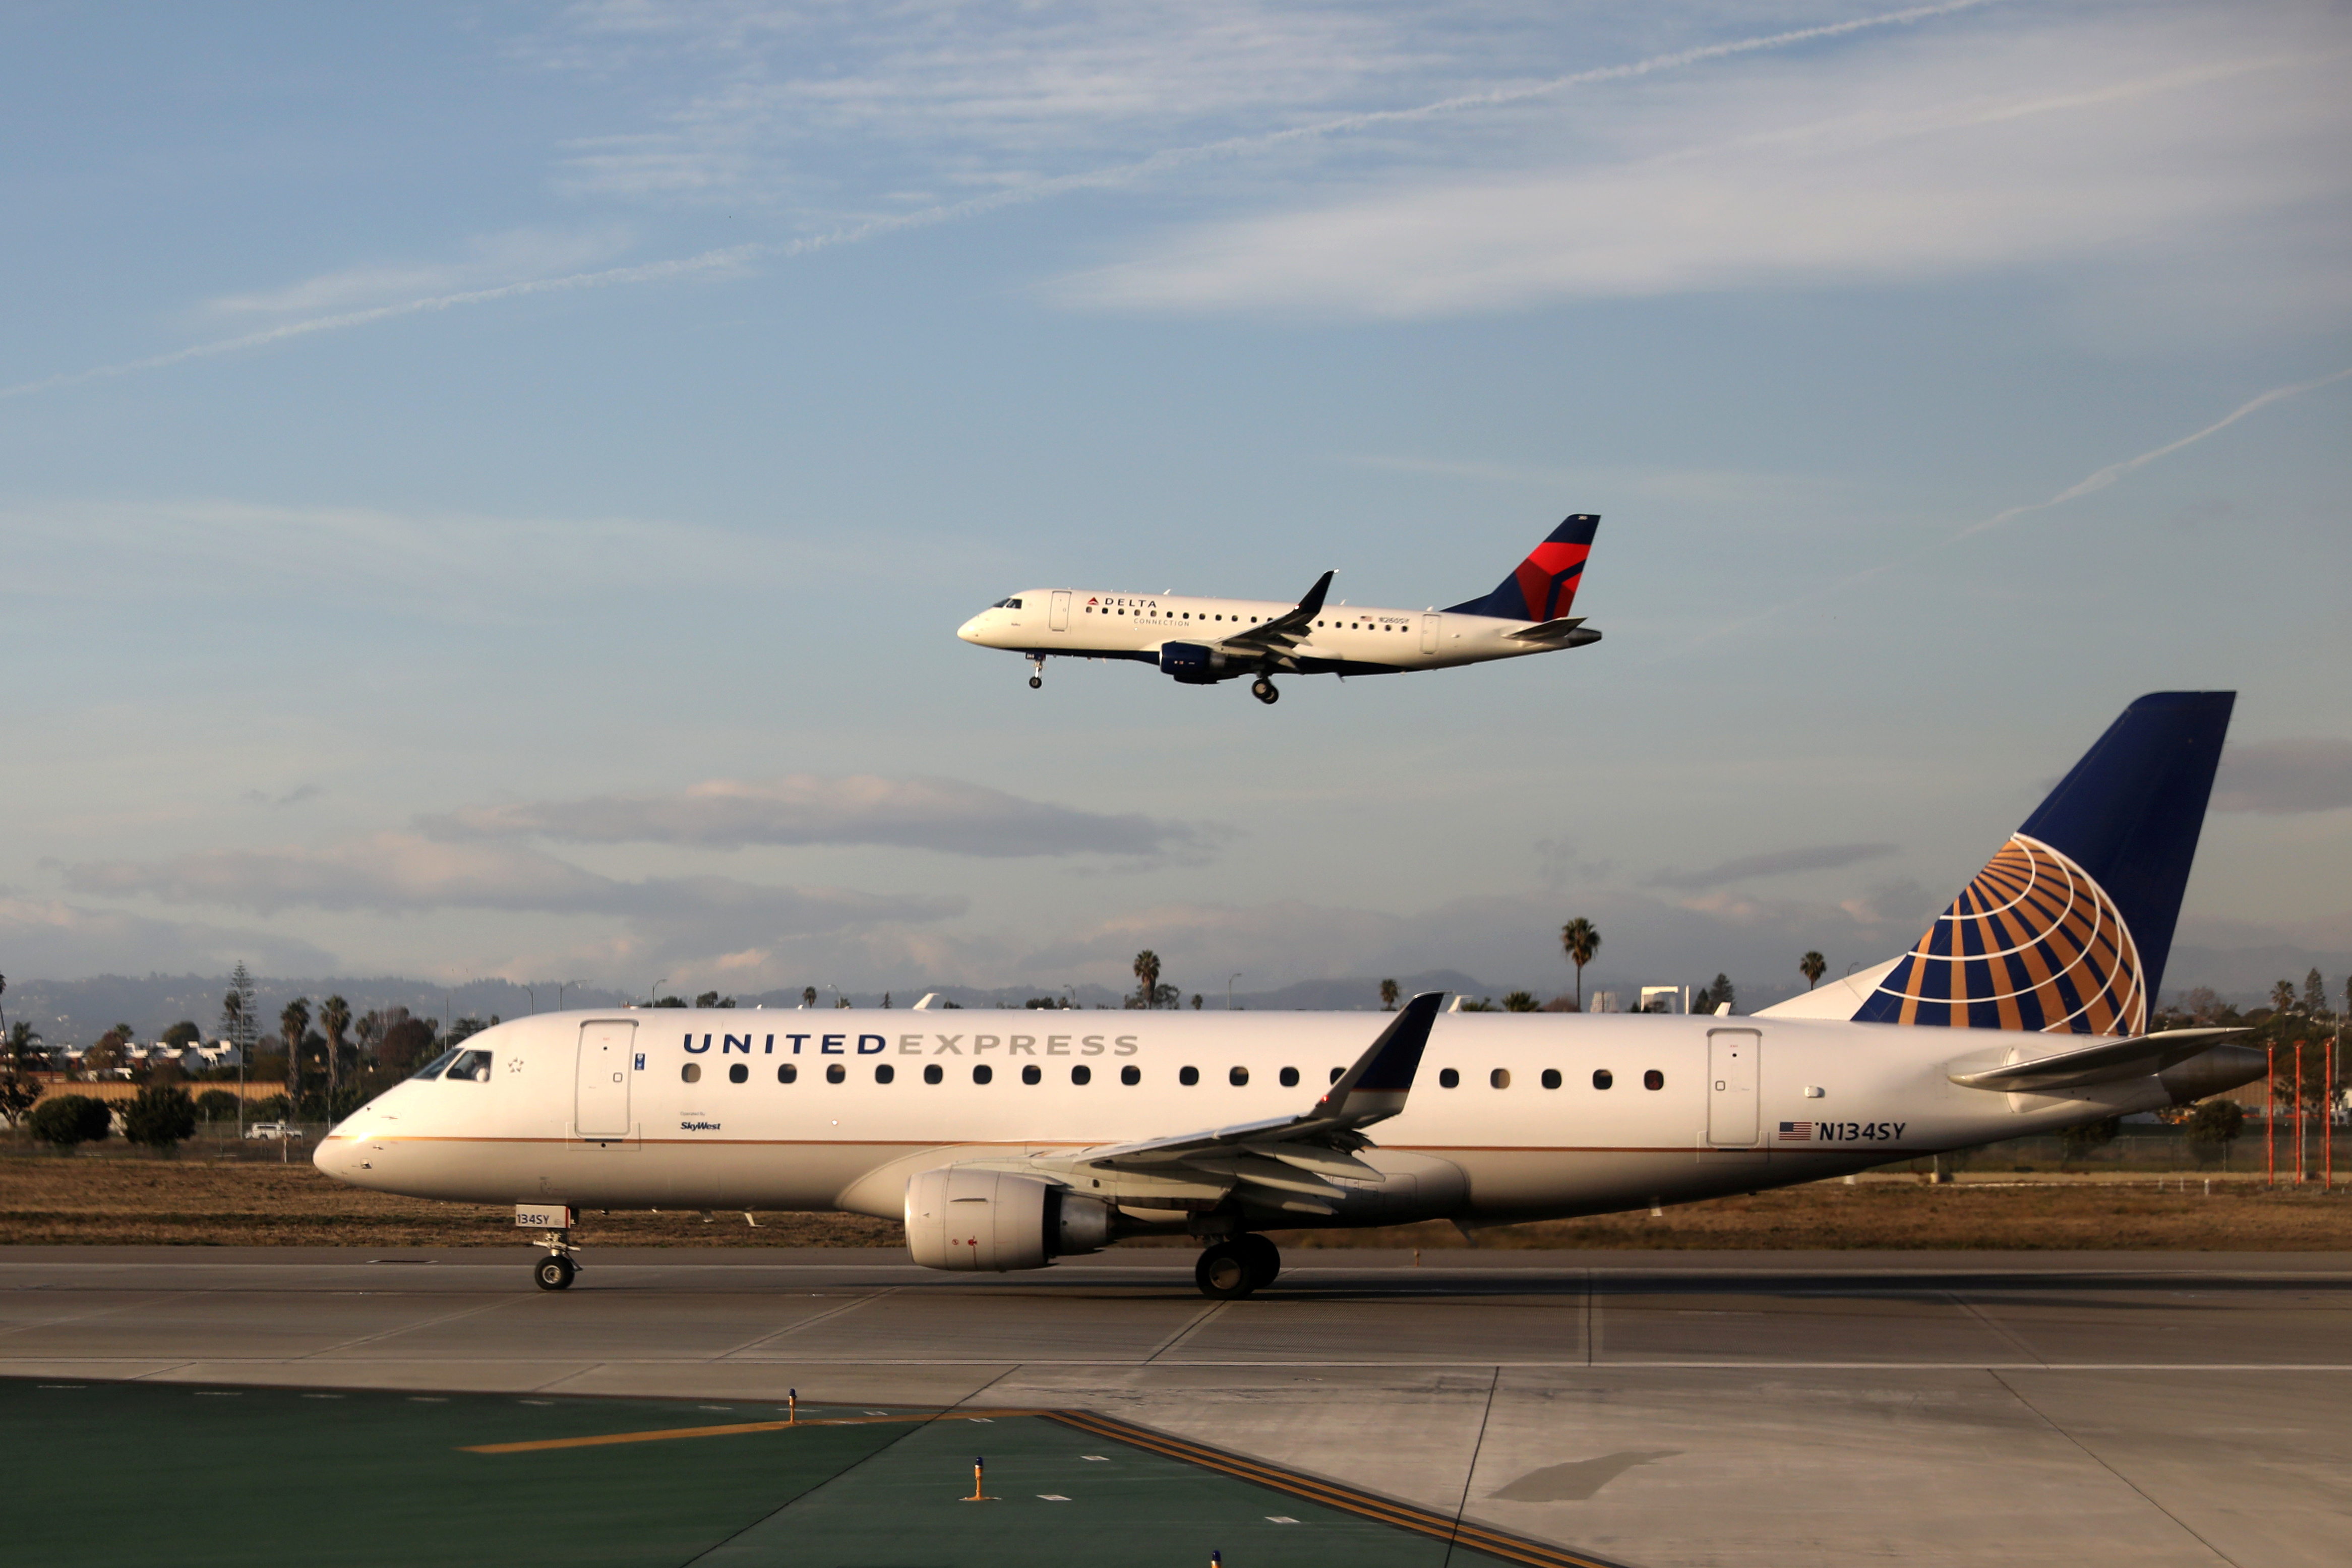 A Delta Connection Embraer ERJ-175LR plane lands as a United Express Embraer ERJ-175LR plane waits to take off at LAX airport in Los Angeles, California U.S. January 10, 2018. REUTERS/Lucy Nicholson